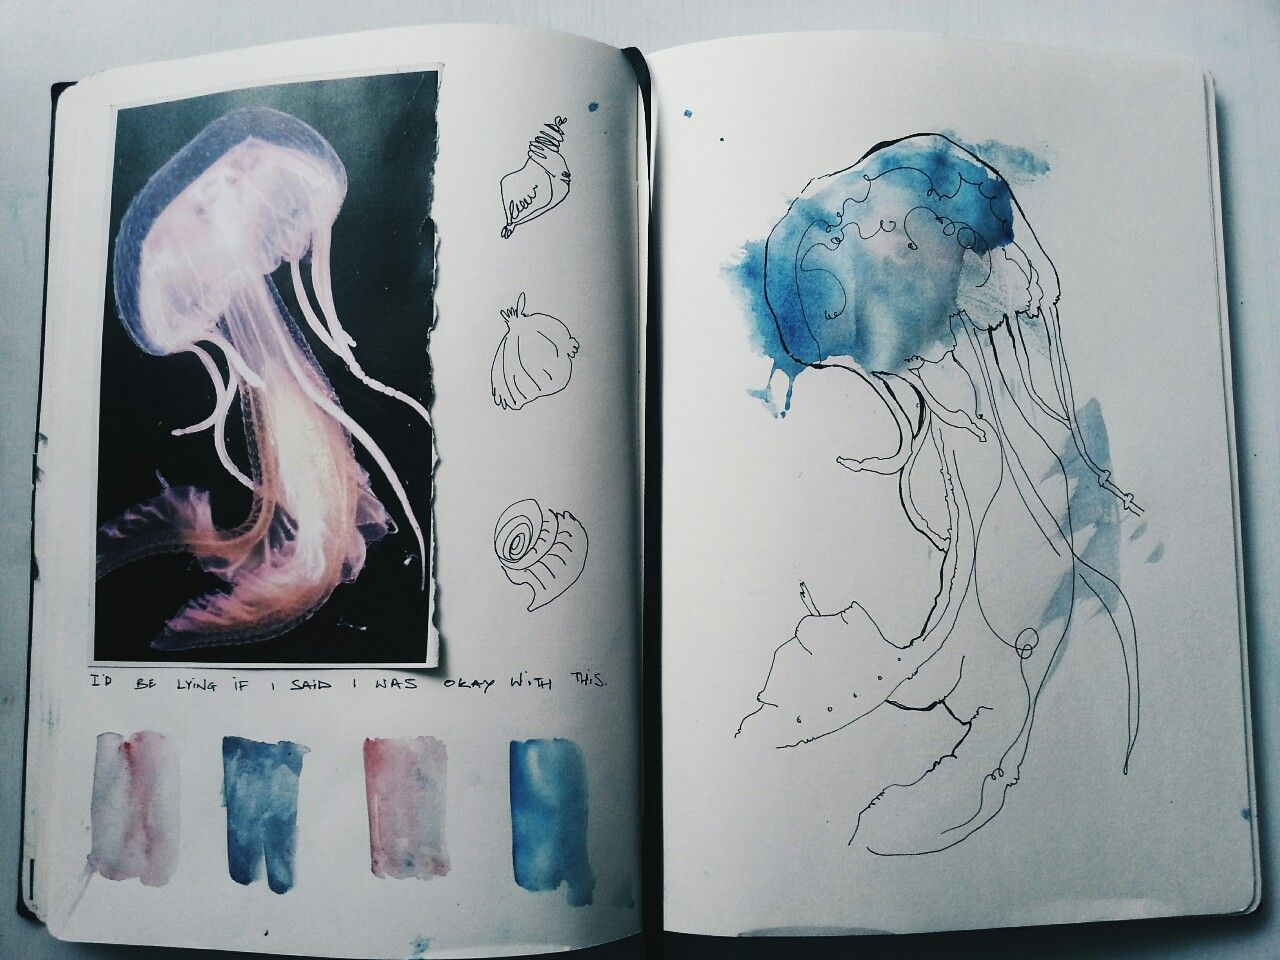 somniatisart: Ocean pages THis gae me an idea: magazine ...